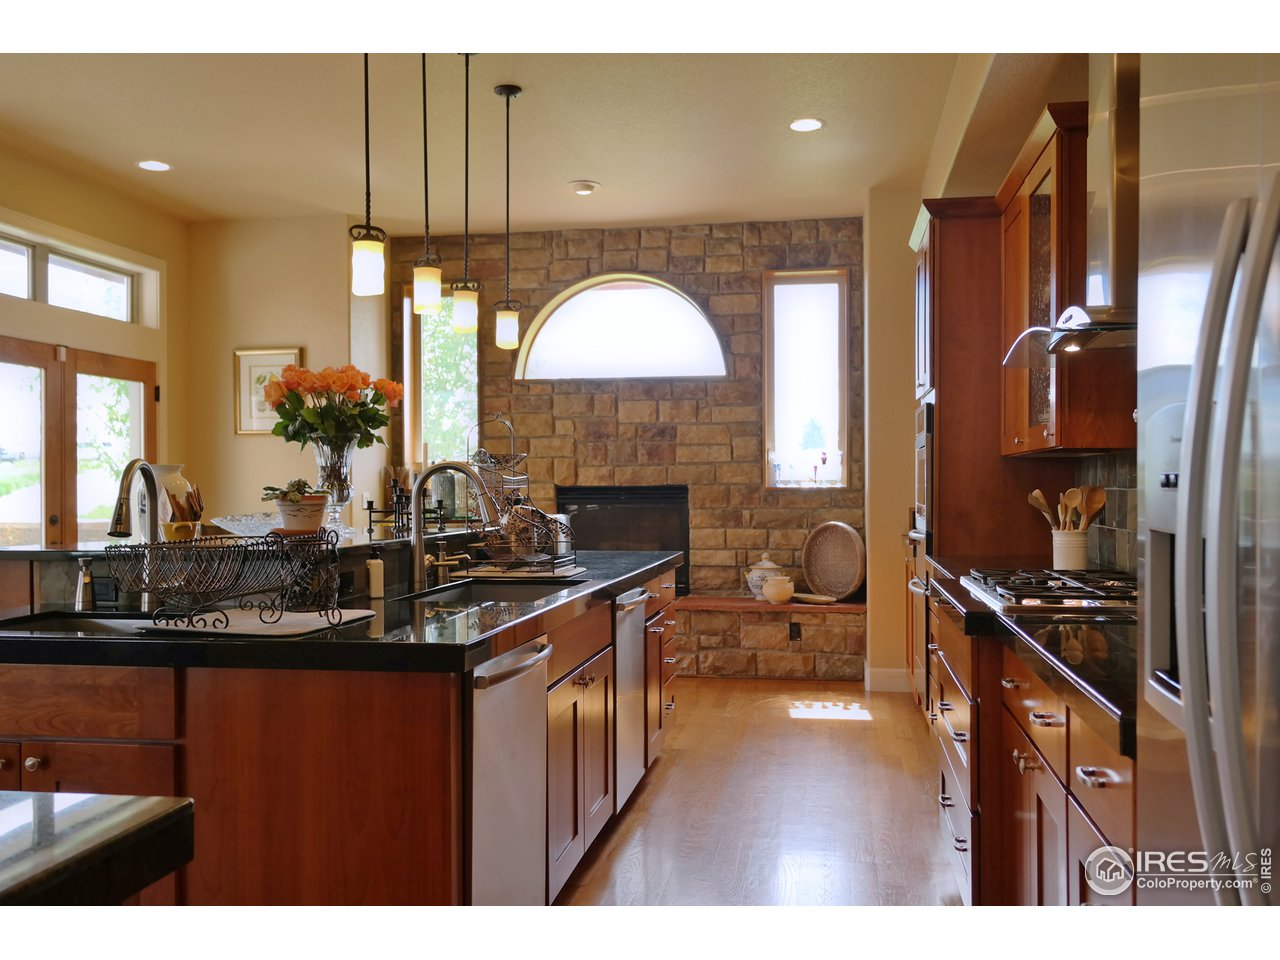 Sunny Kitchen w/Substantial Double Island